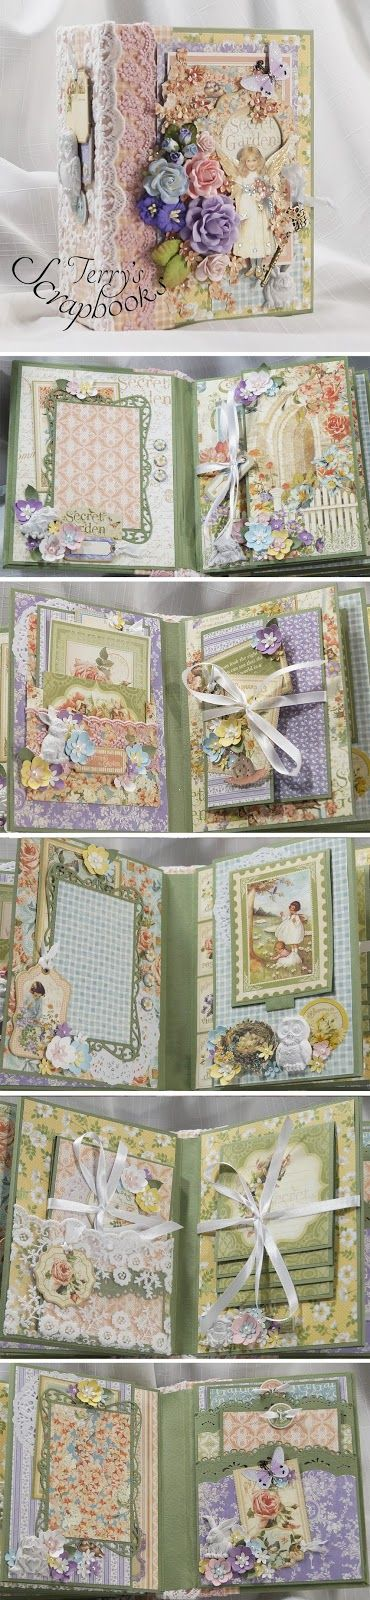 Terry's Scrapbooks: Graphic 45 Secret Garden Mini Album Reneabouquets Design Team Project